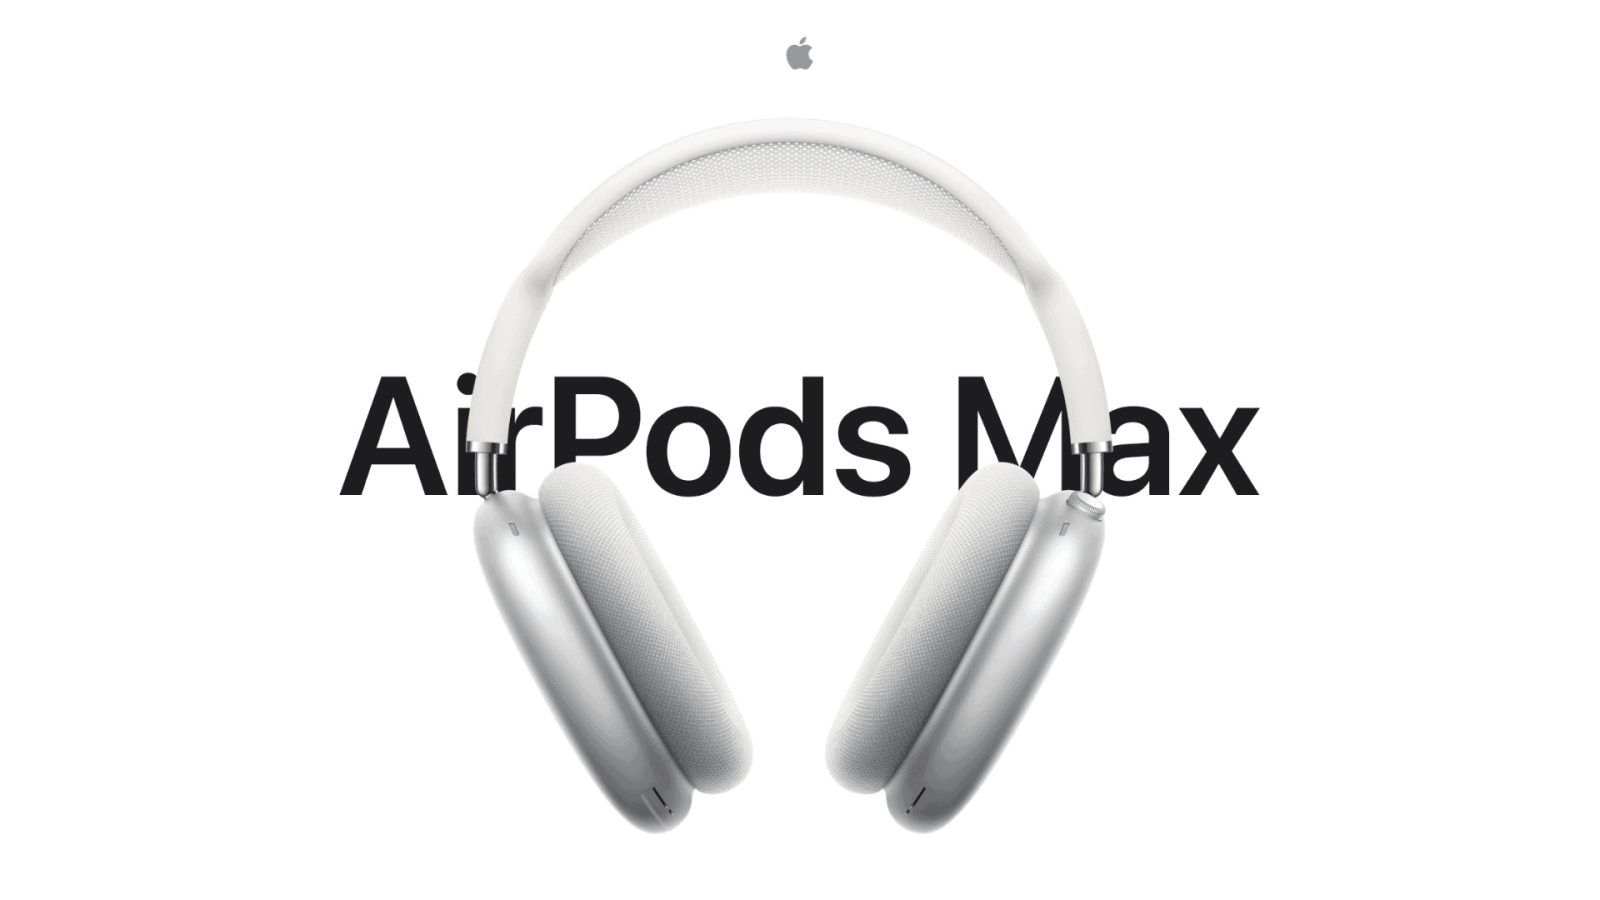 Apple Announced AirPods Max Featuring High-Fidelity Audio, Adaptive EQ, ANC, And Spatial Audio